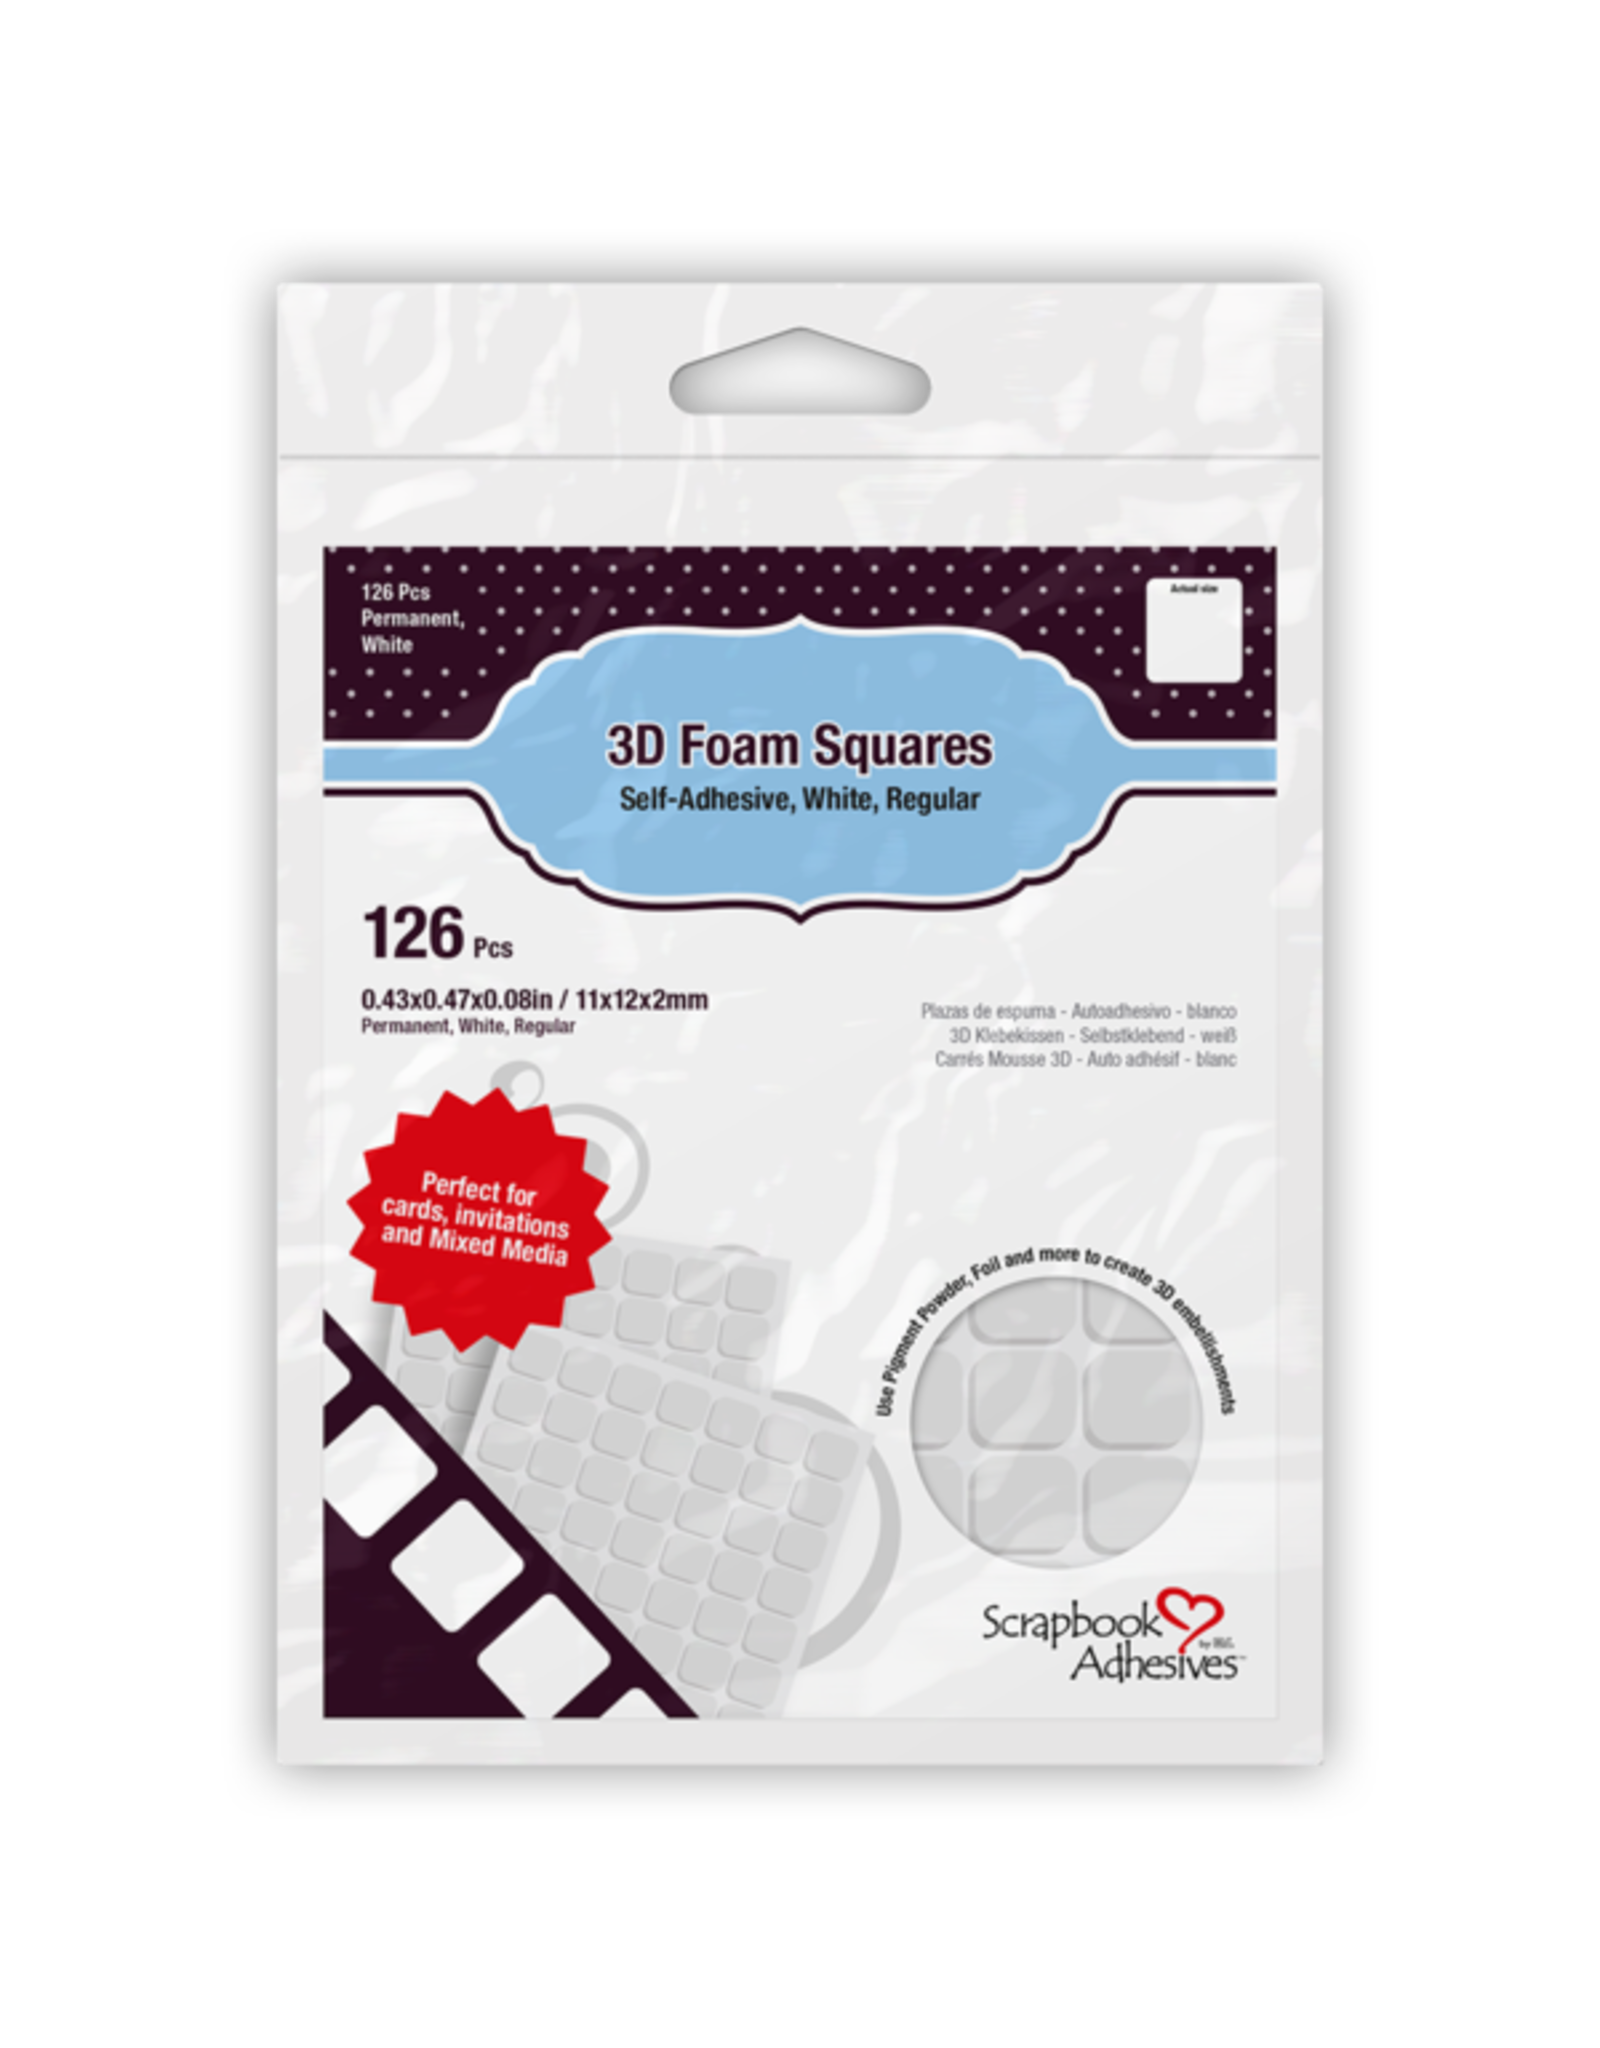 Scrapbook Adhesives 3D Foam Squares White - 1/2 inch